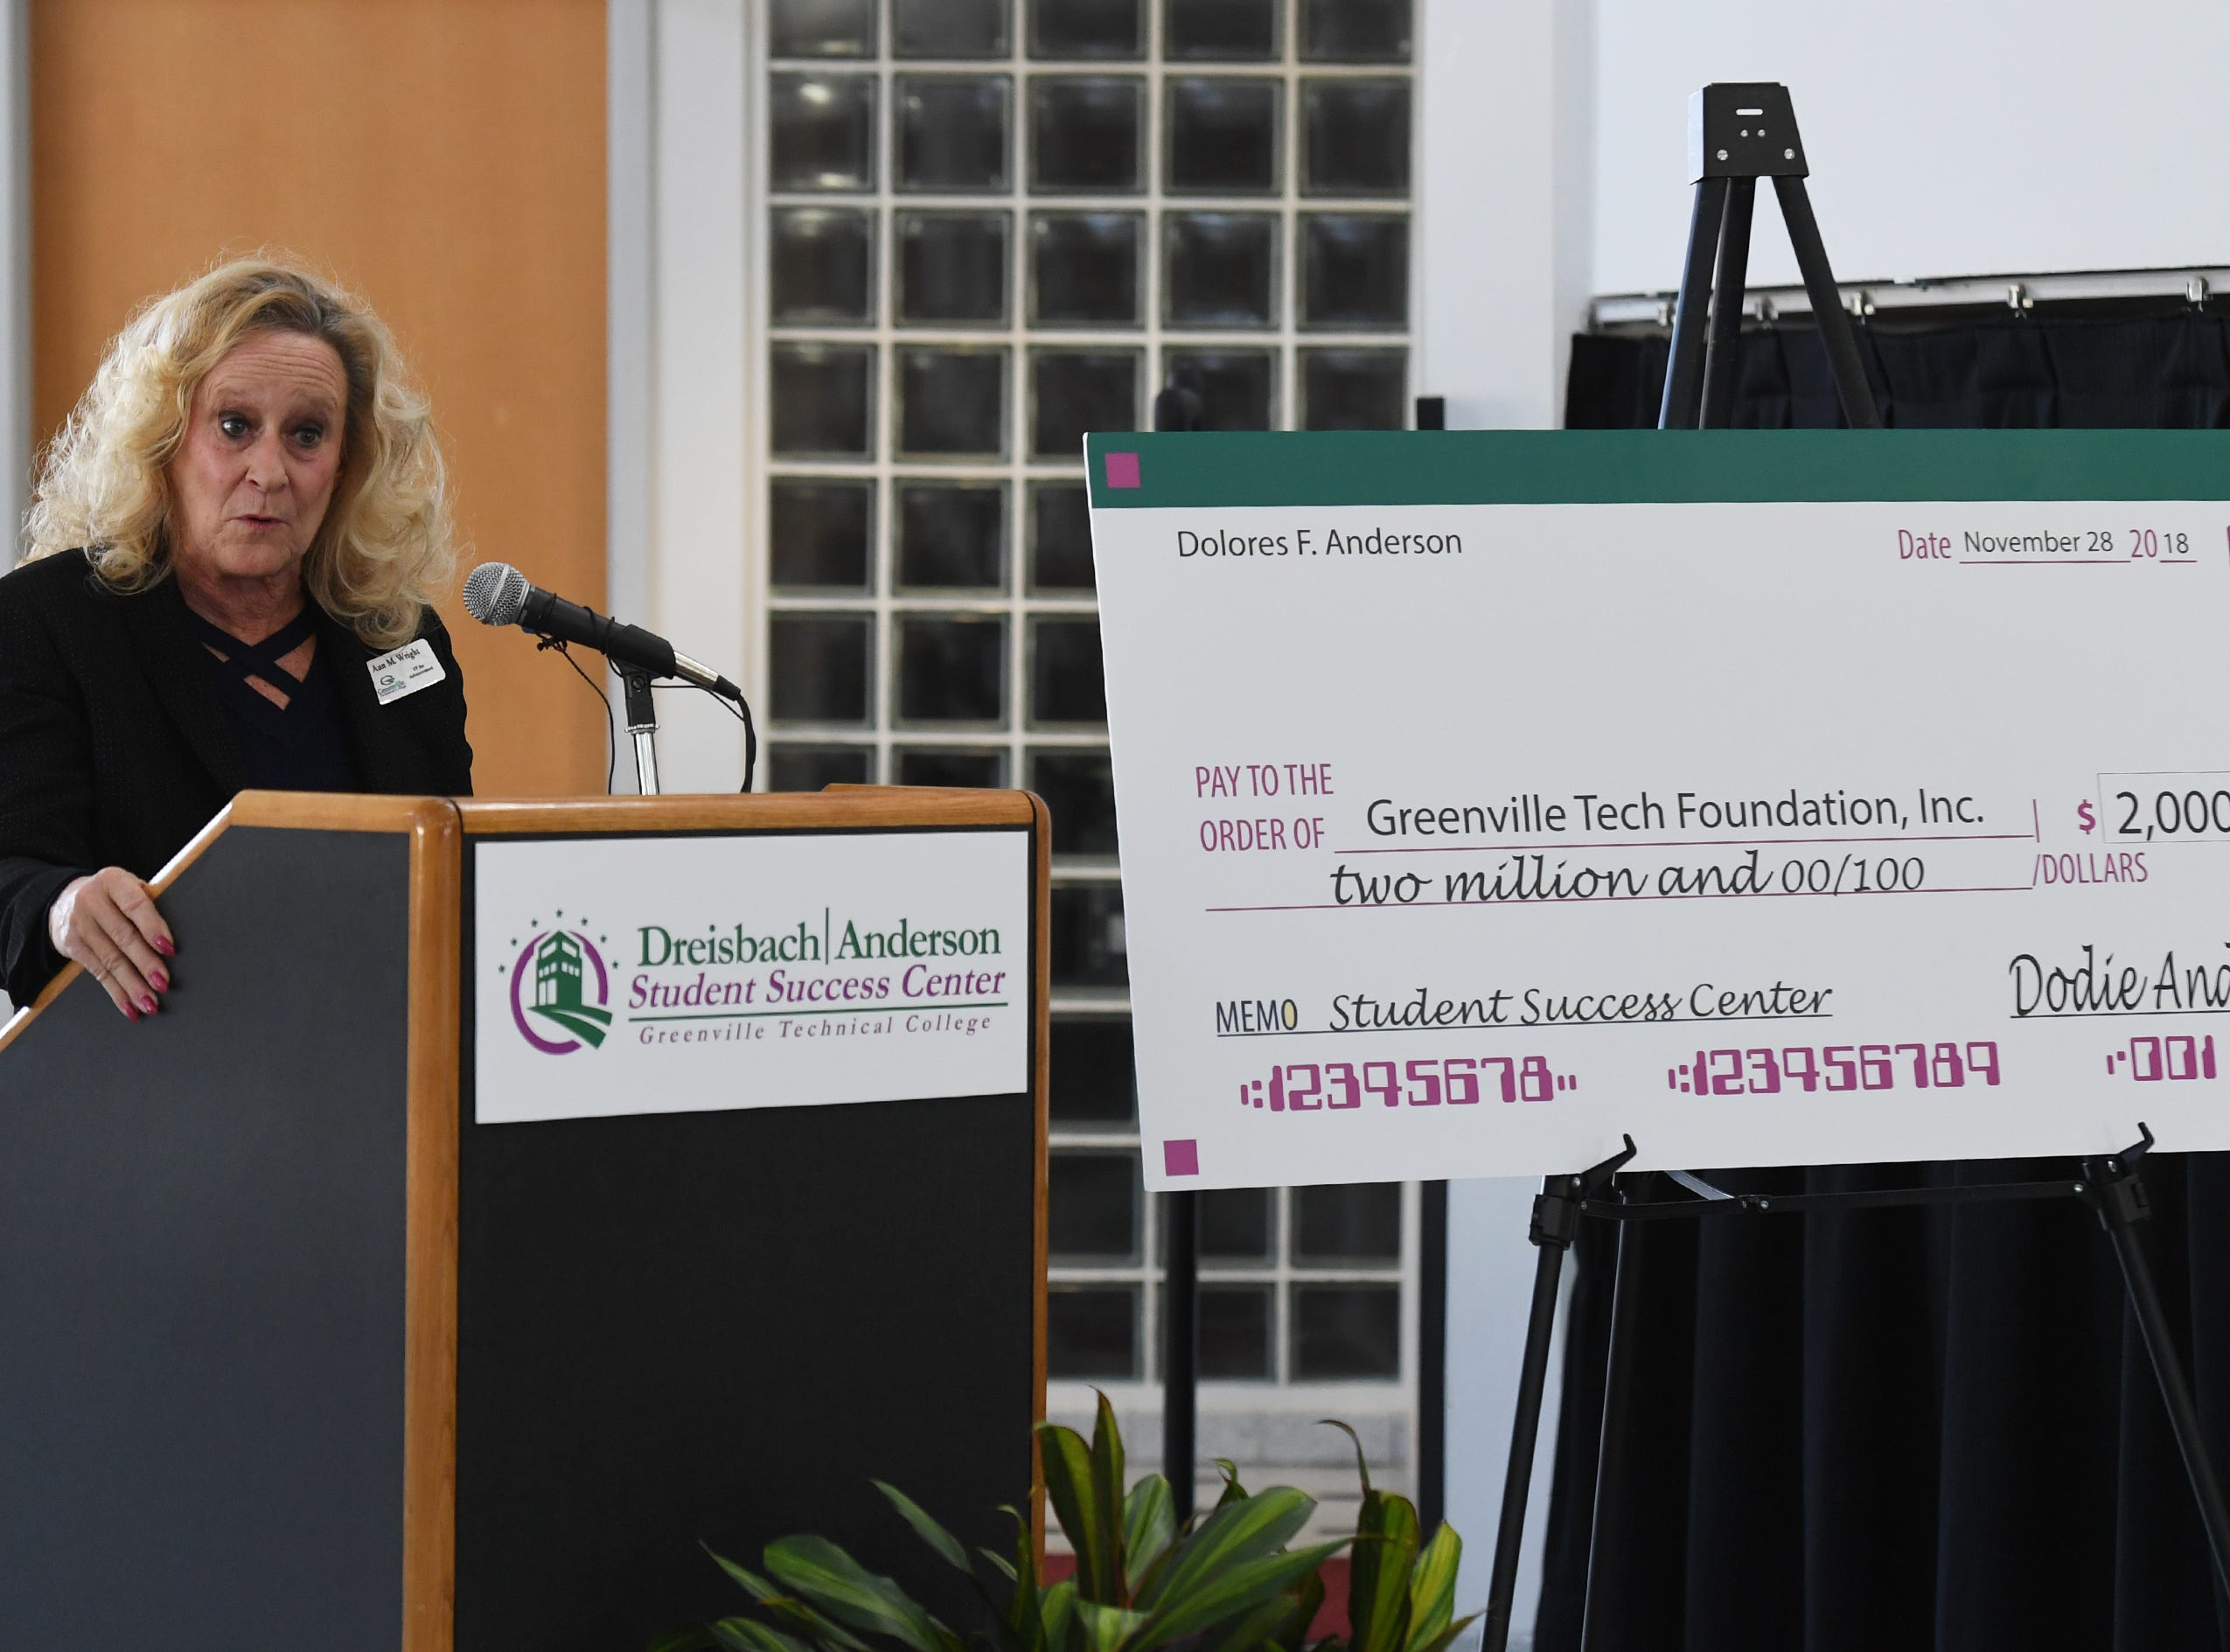 Ann Wright, vice president for advancement with the Greenville Tech Foundation, talks during an event celebrating a $2 million donation at Greenville Technical College Wednesday, Nov. 28, 2018. Dodie Anderson donated the money which will be used for The Dreisbach/Anderson Student Success Center.